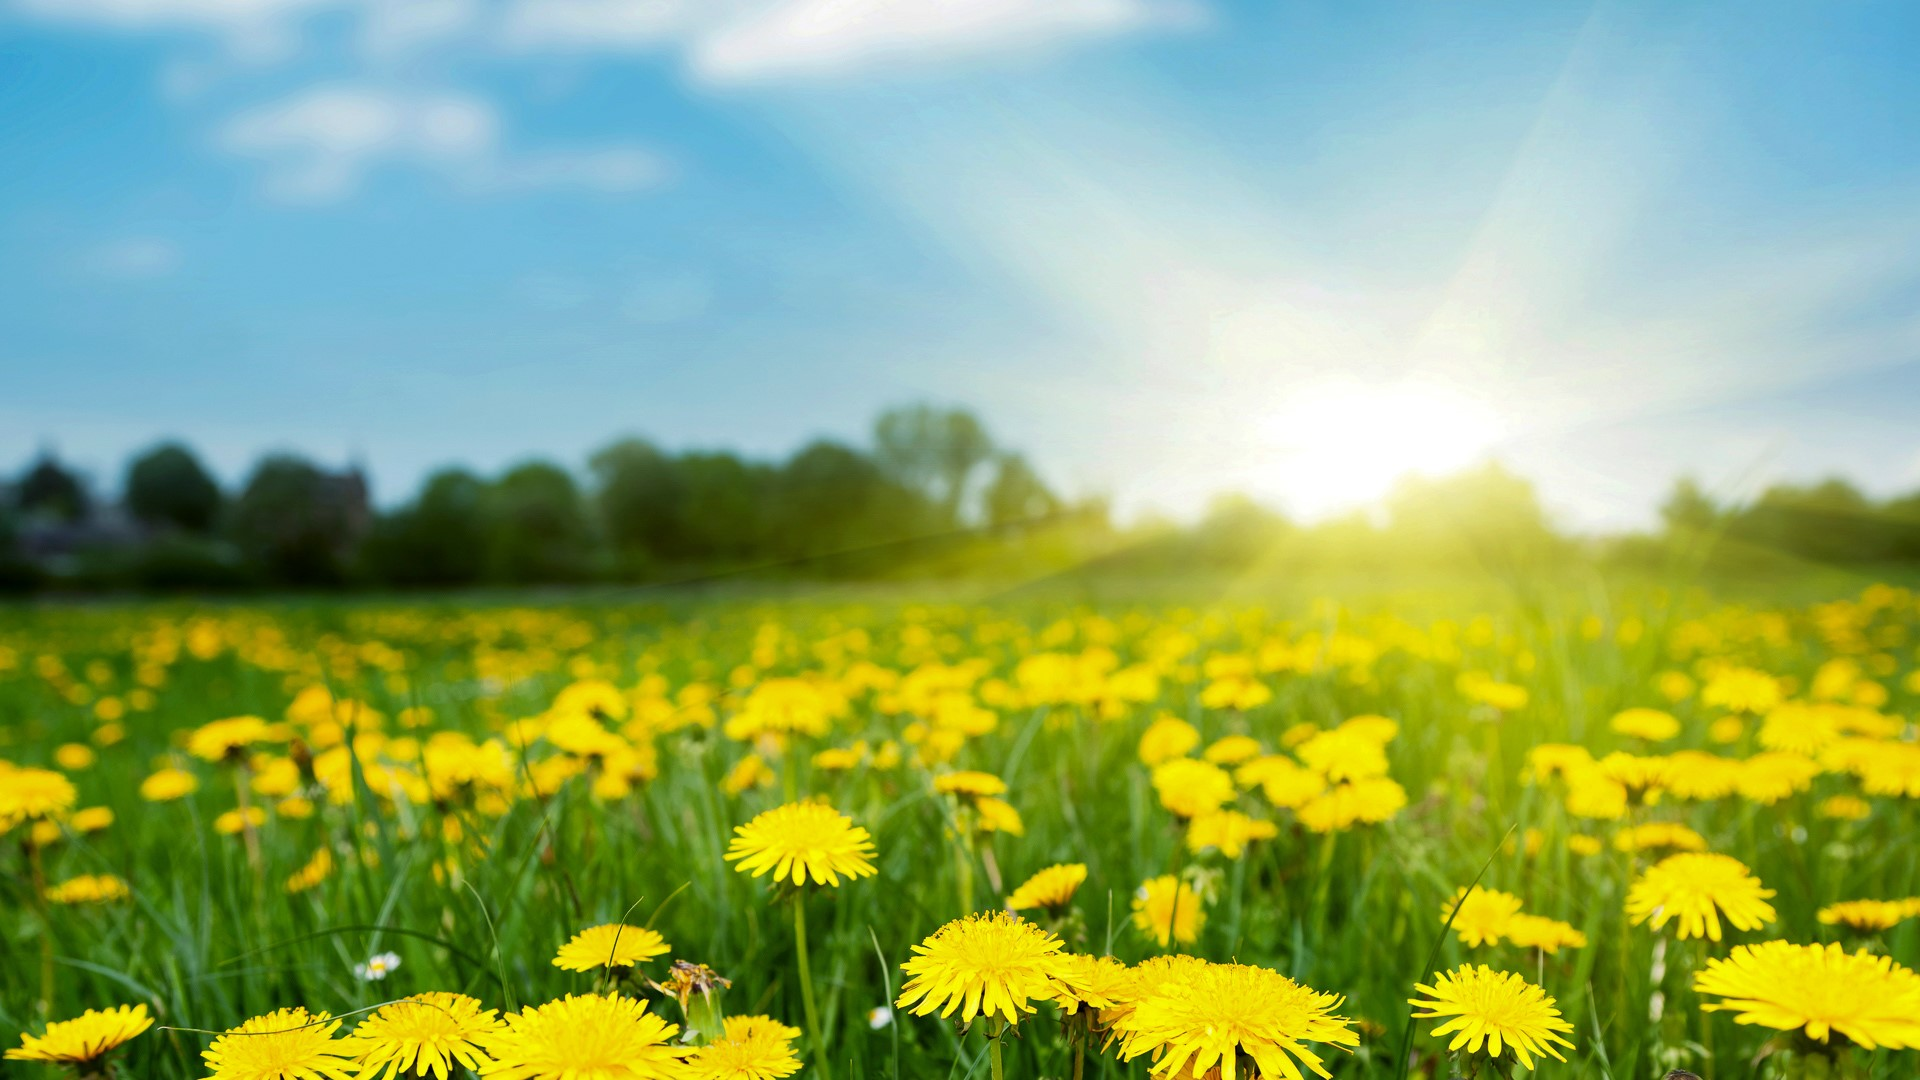 Spring field with dandelions on bright sunny day | Windows ...